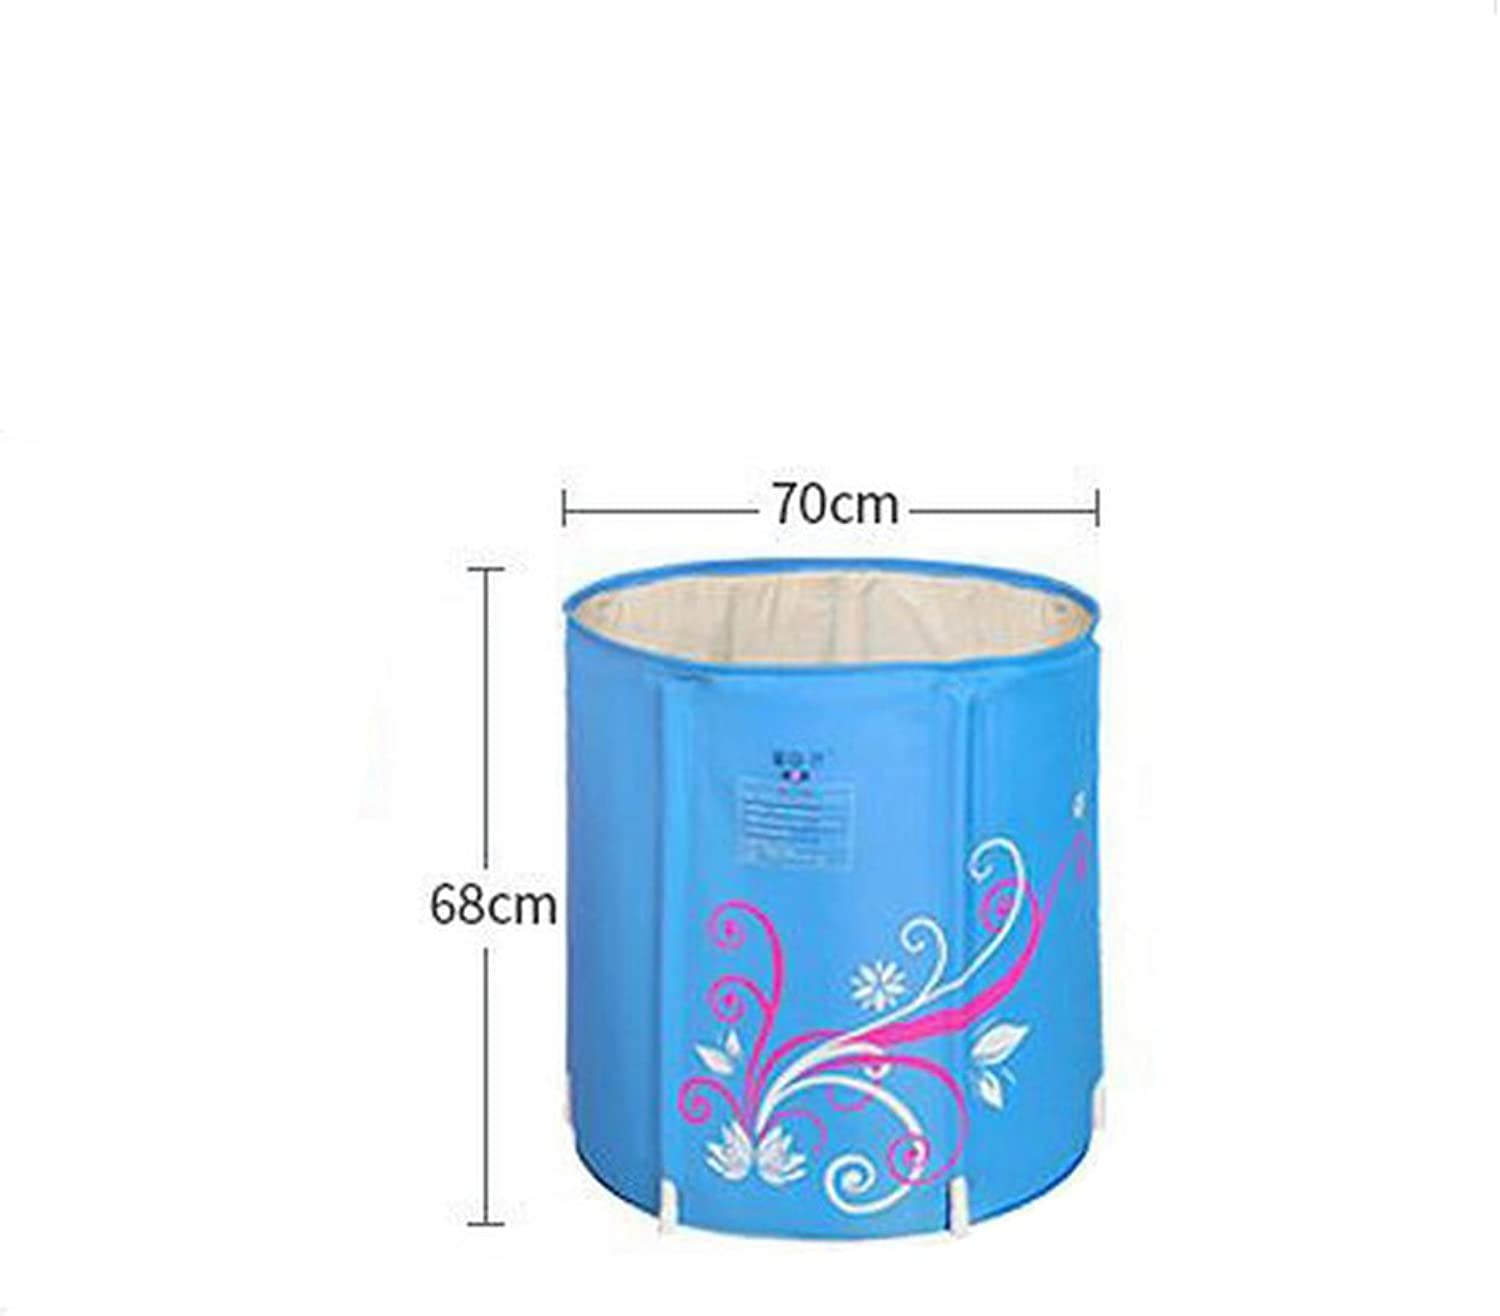 Bath tub Inflatable Bathtub Thicker Quilted Fold Bath Tub Bath Barrels Adult Bathtub Wash Basin Bath Barrels Bath barrels ( color   bluee , Size   7068CM )